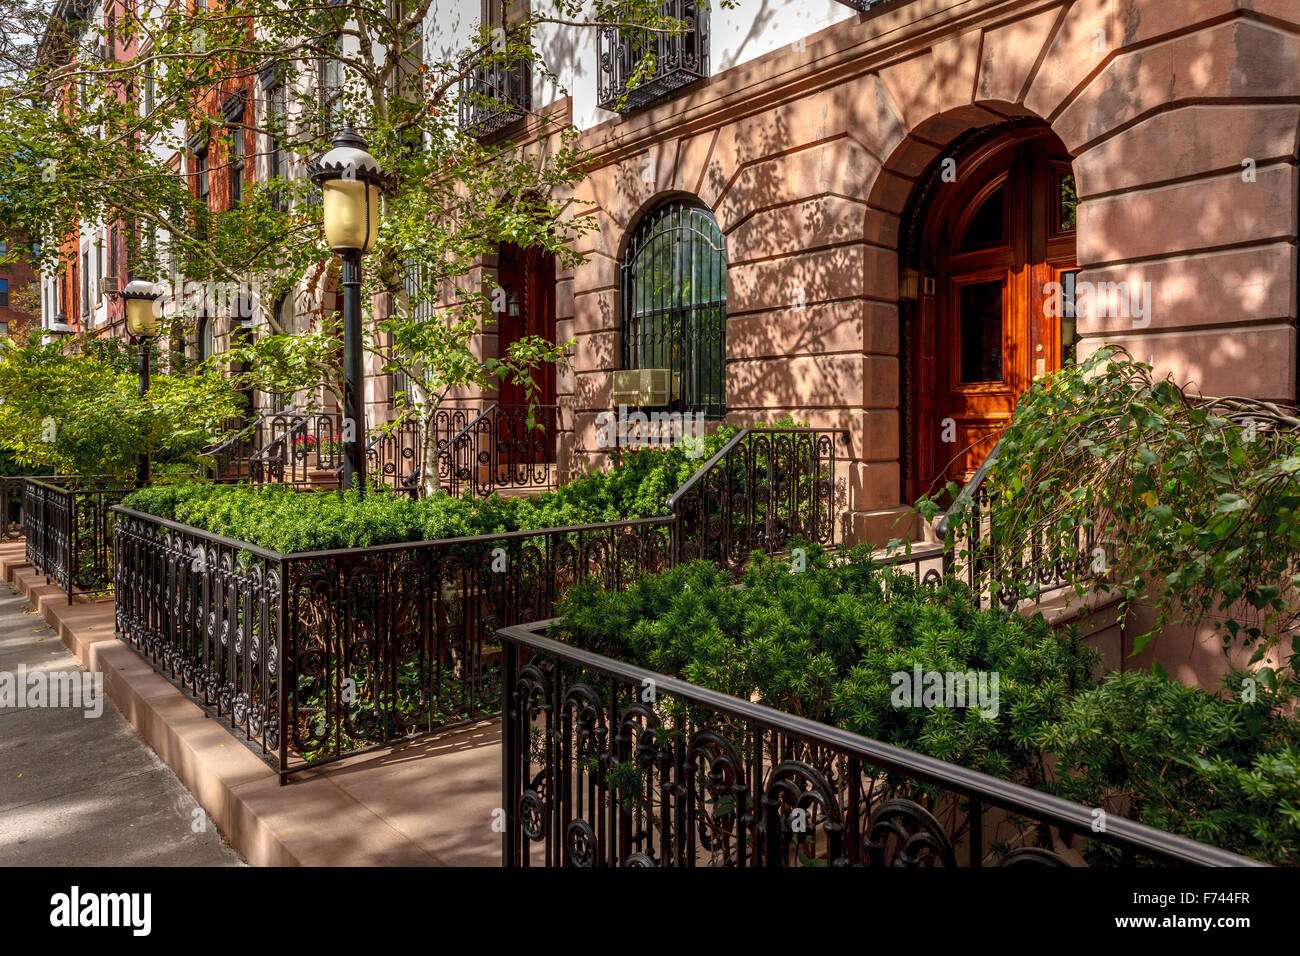 residential area new york city stockfotos residential area new york city bilder alamy. Black Bedroom Furniture Sets. Home Design Ideas